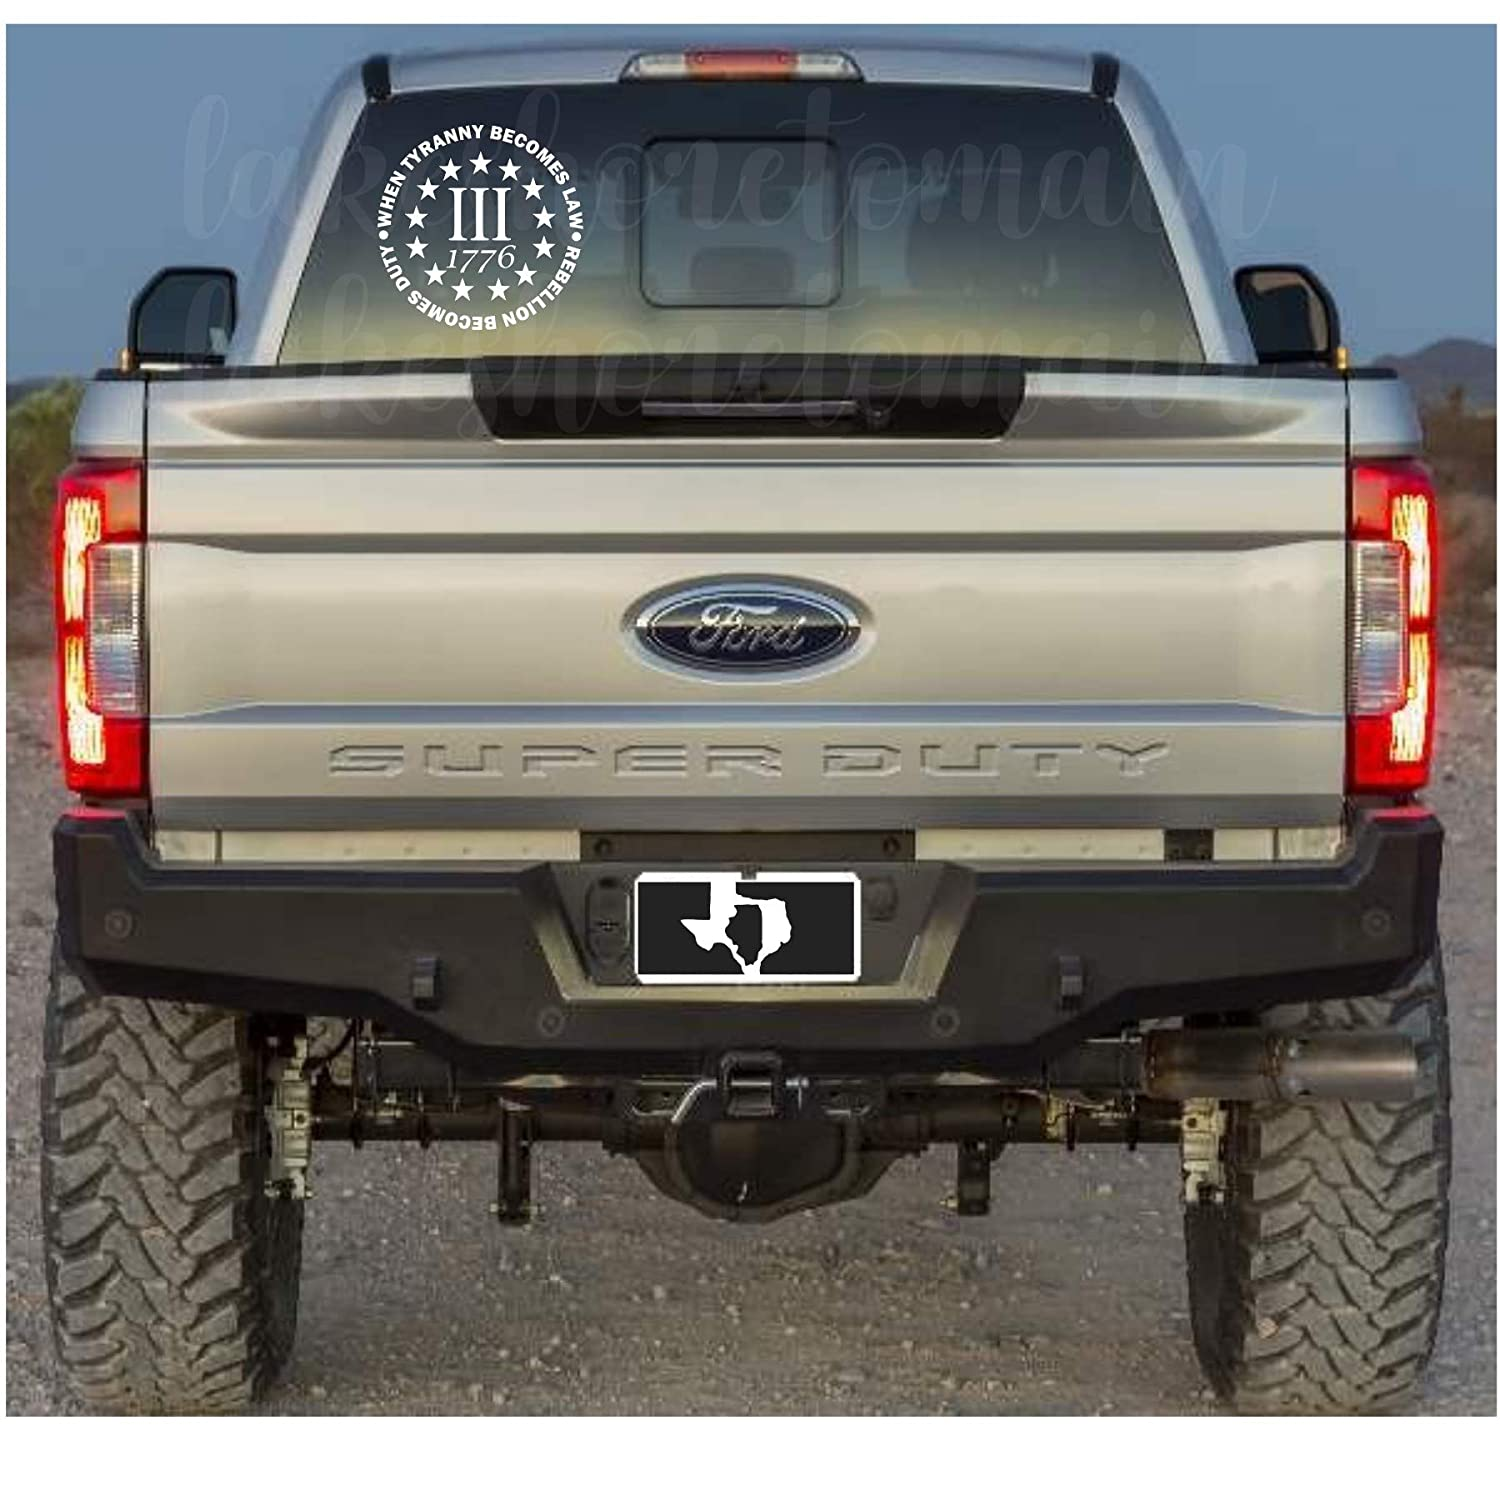 Three percent decal USA decal Southern decal